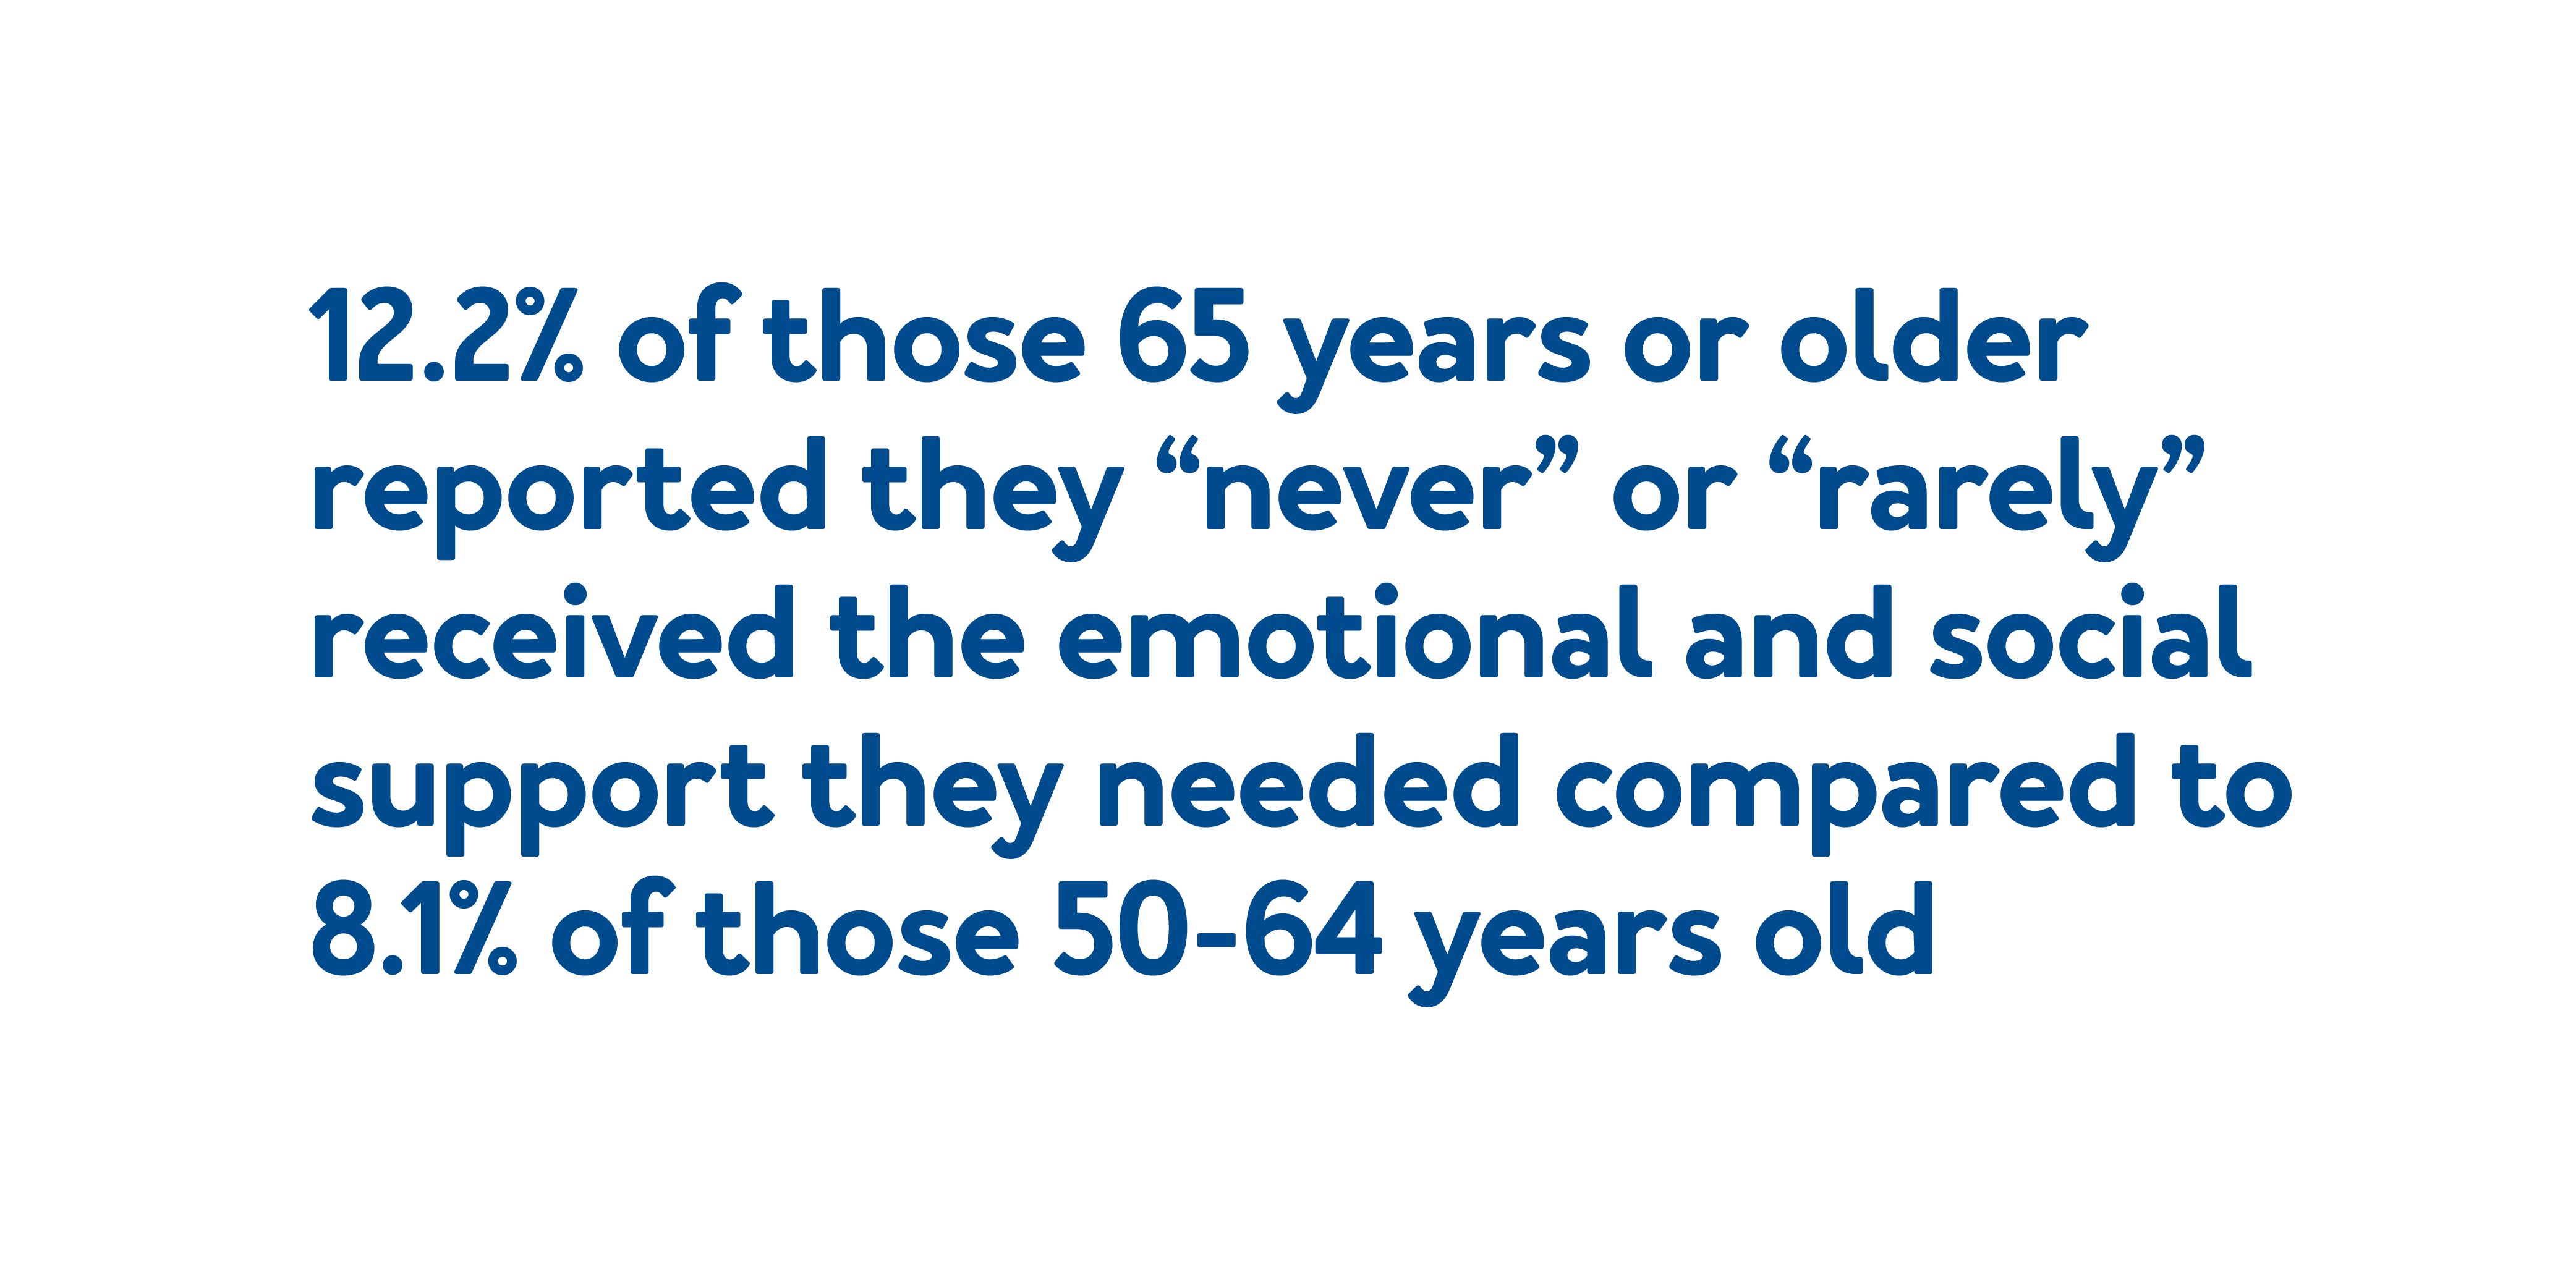 """12.2% of those 65 years or older reported they """"never"""" or """"rarely"""" received the emotional and social support they needed compared to 8.1% of those 50-64 years old."""